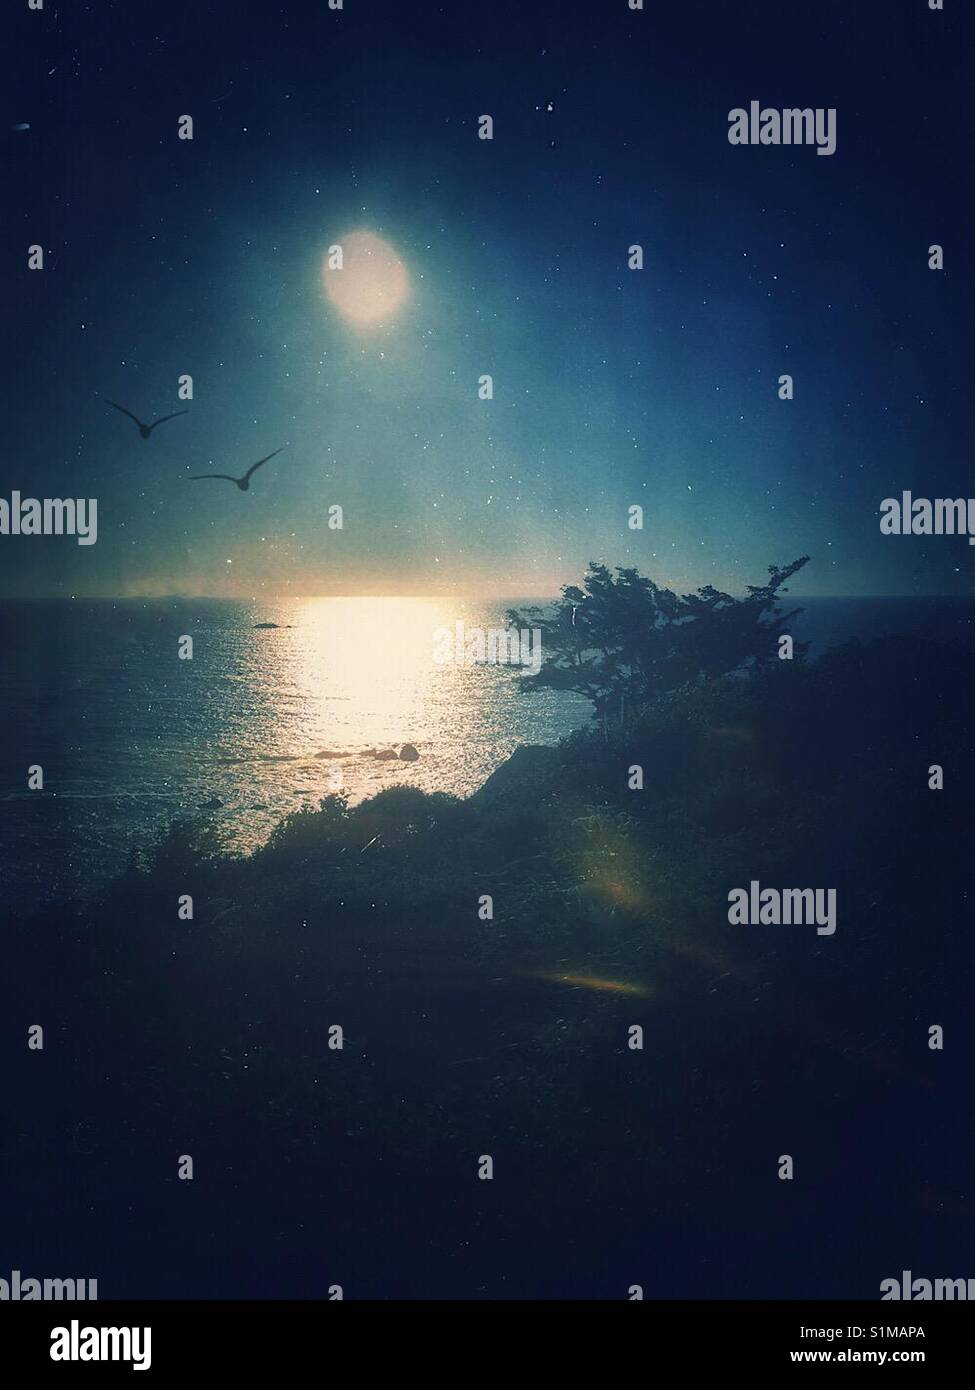 Evening over the Pacific - Stock Image